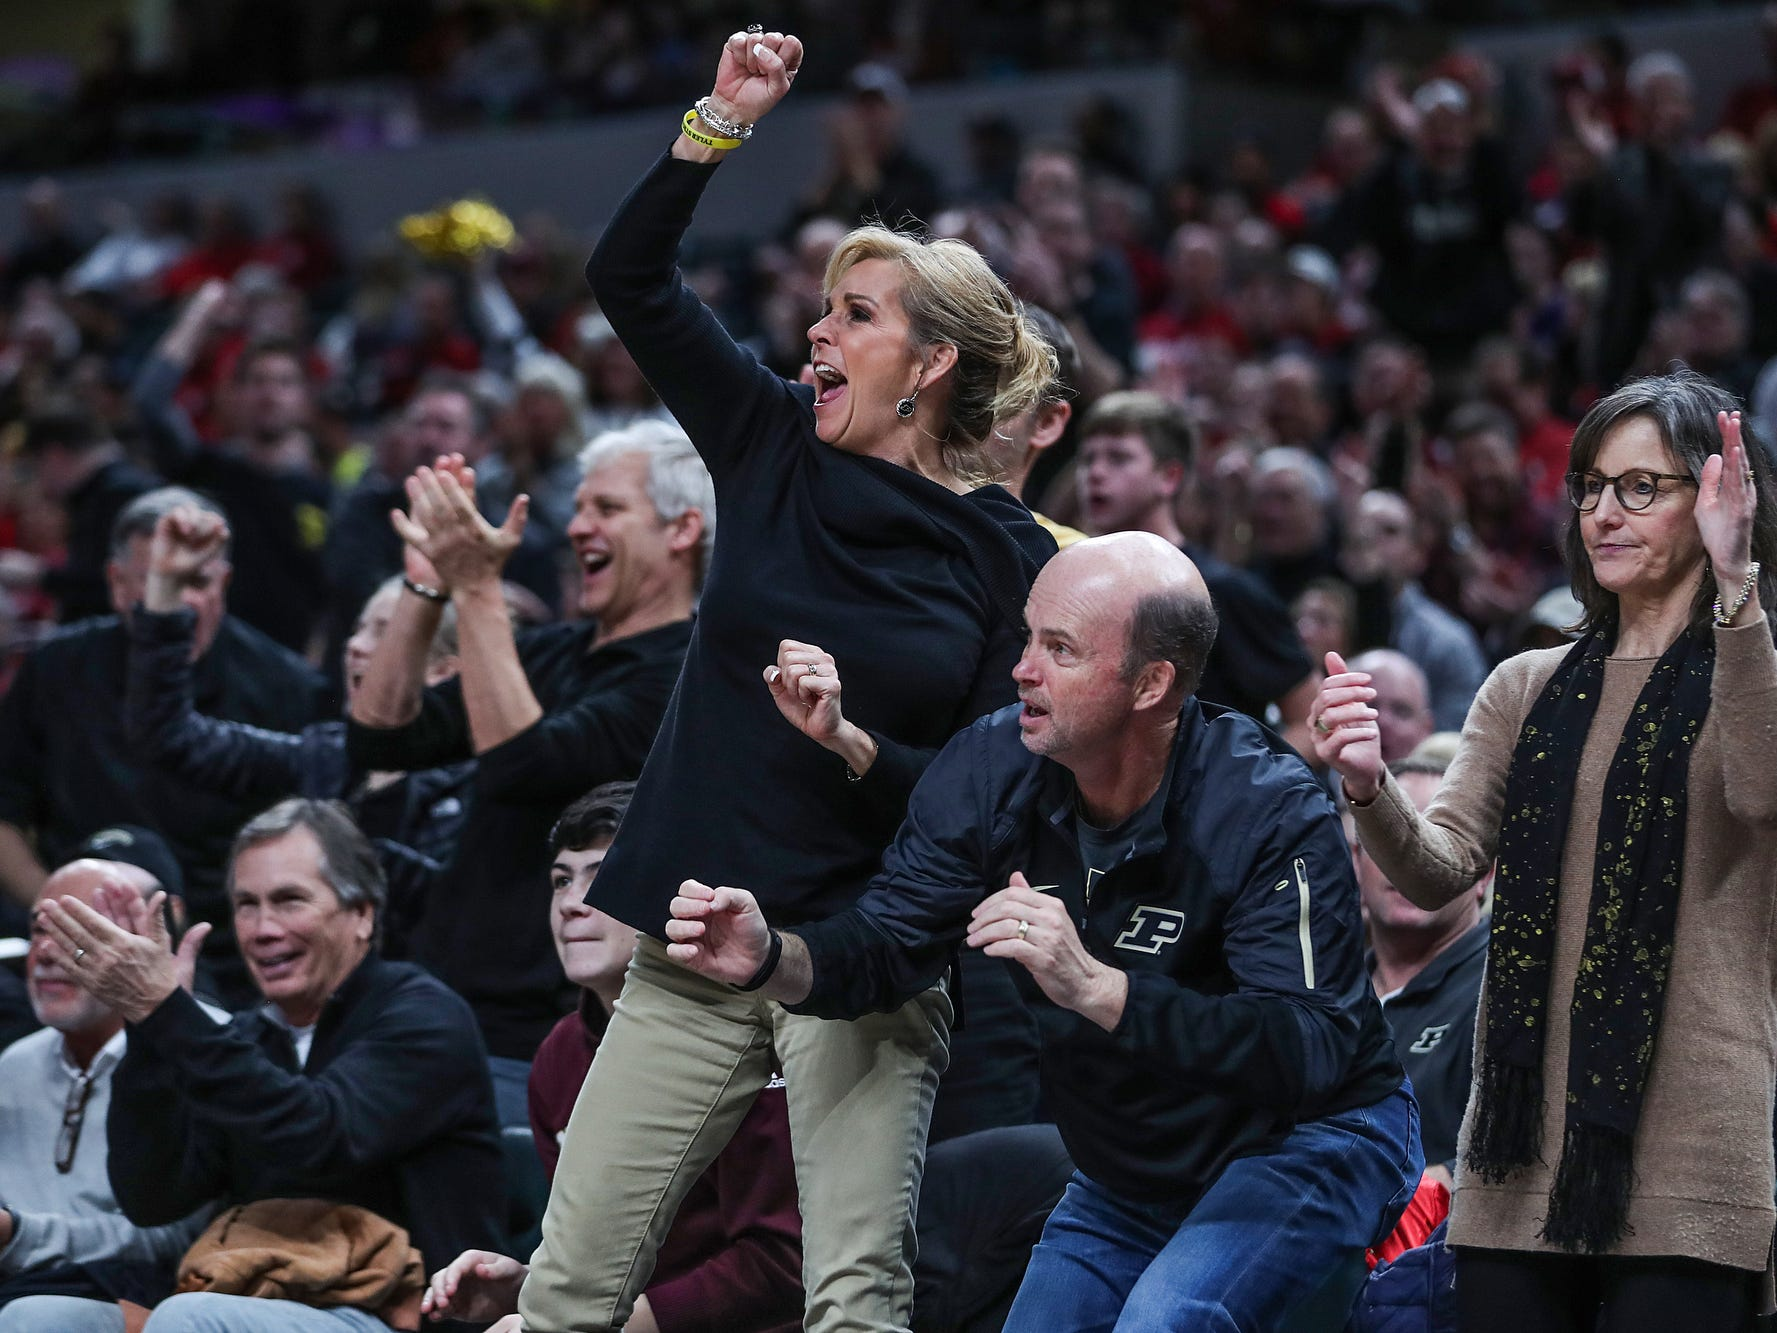 Purdue Boilermakers fans cheer as their team regains possession of the ball in the second half of the Crossroads Classic game between Purdue and Notre Dame at Bankers Life Fieldhouse in Indiananpolis, Saturday, Dec. 15, 2018. Notre Dame won, 88-80.